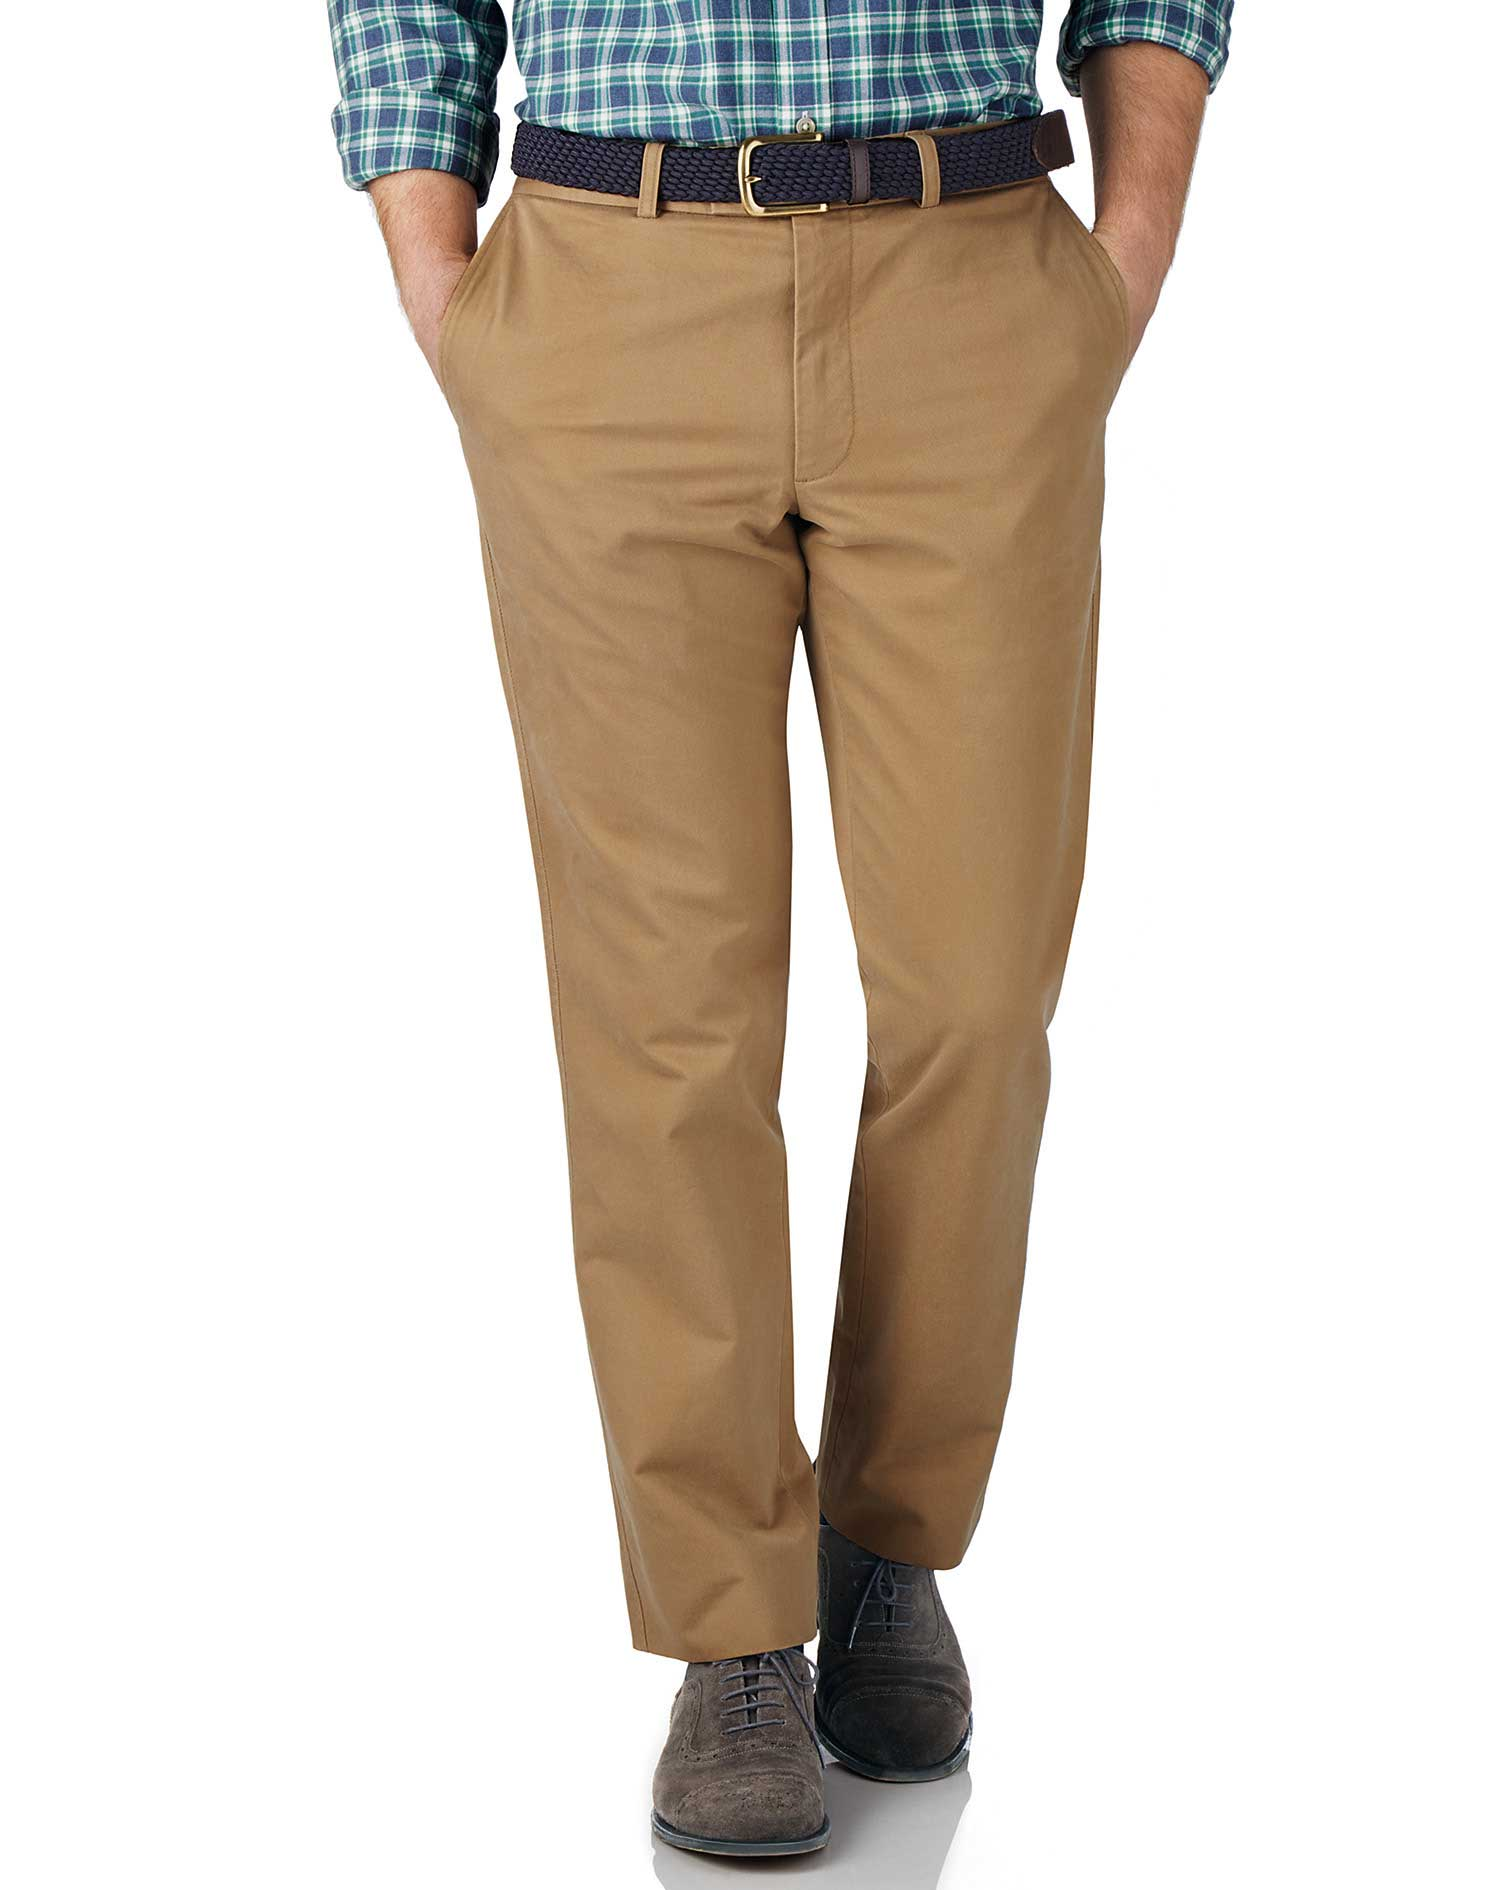 Tan Slim Fit Flat Front Weekend Cotton Chino Trousers Size W36 L32 by Charles Tyrwhitt